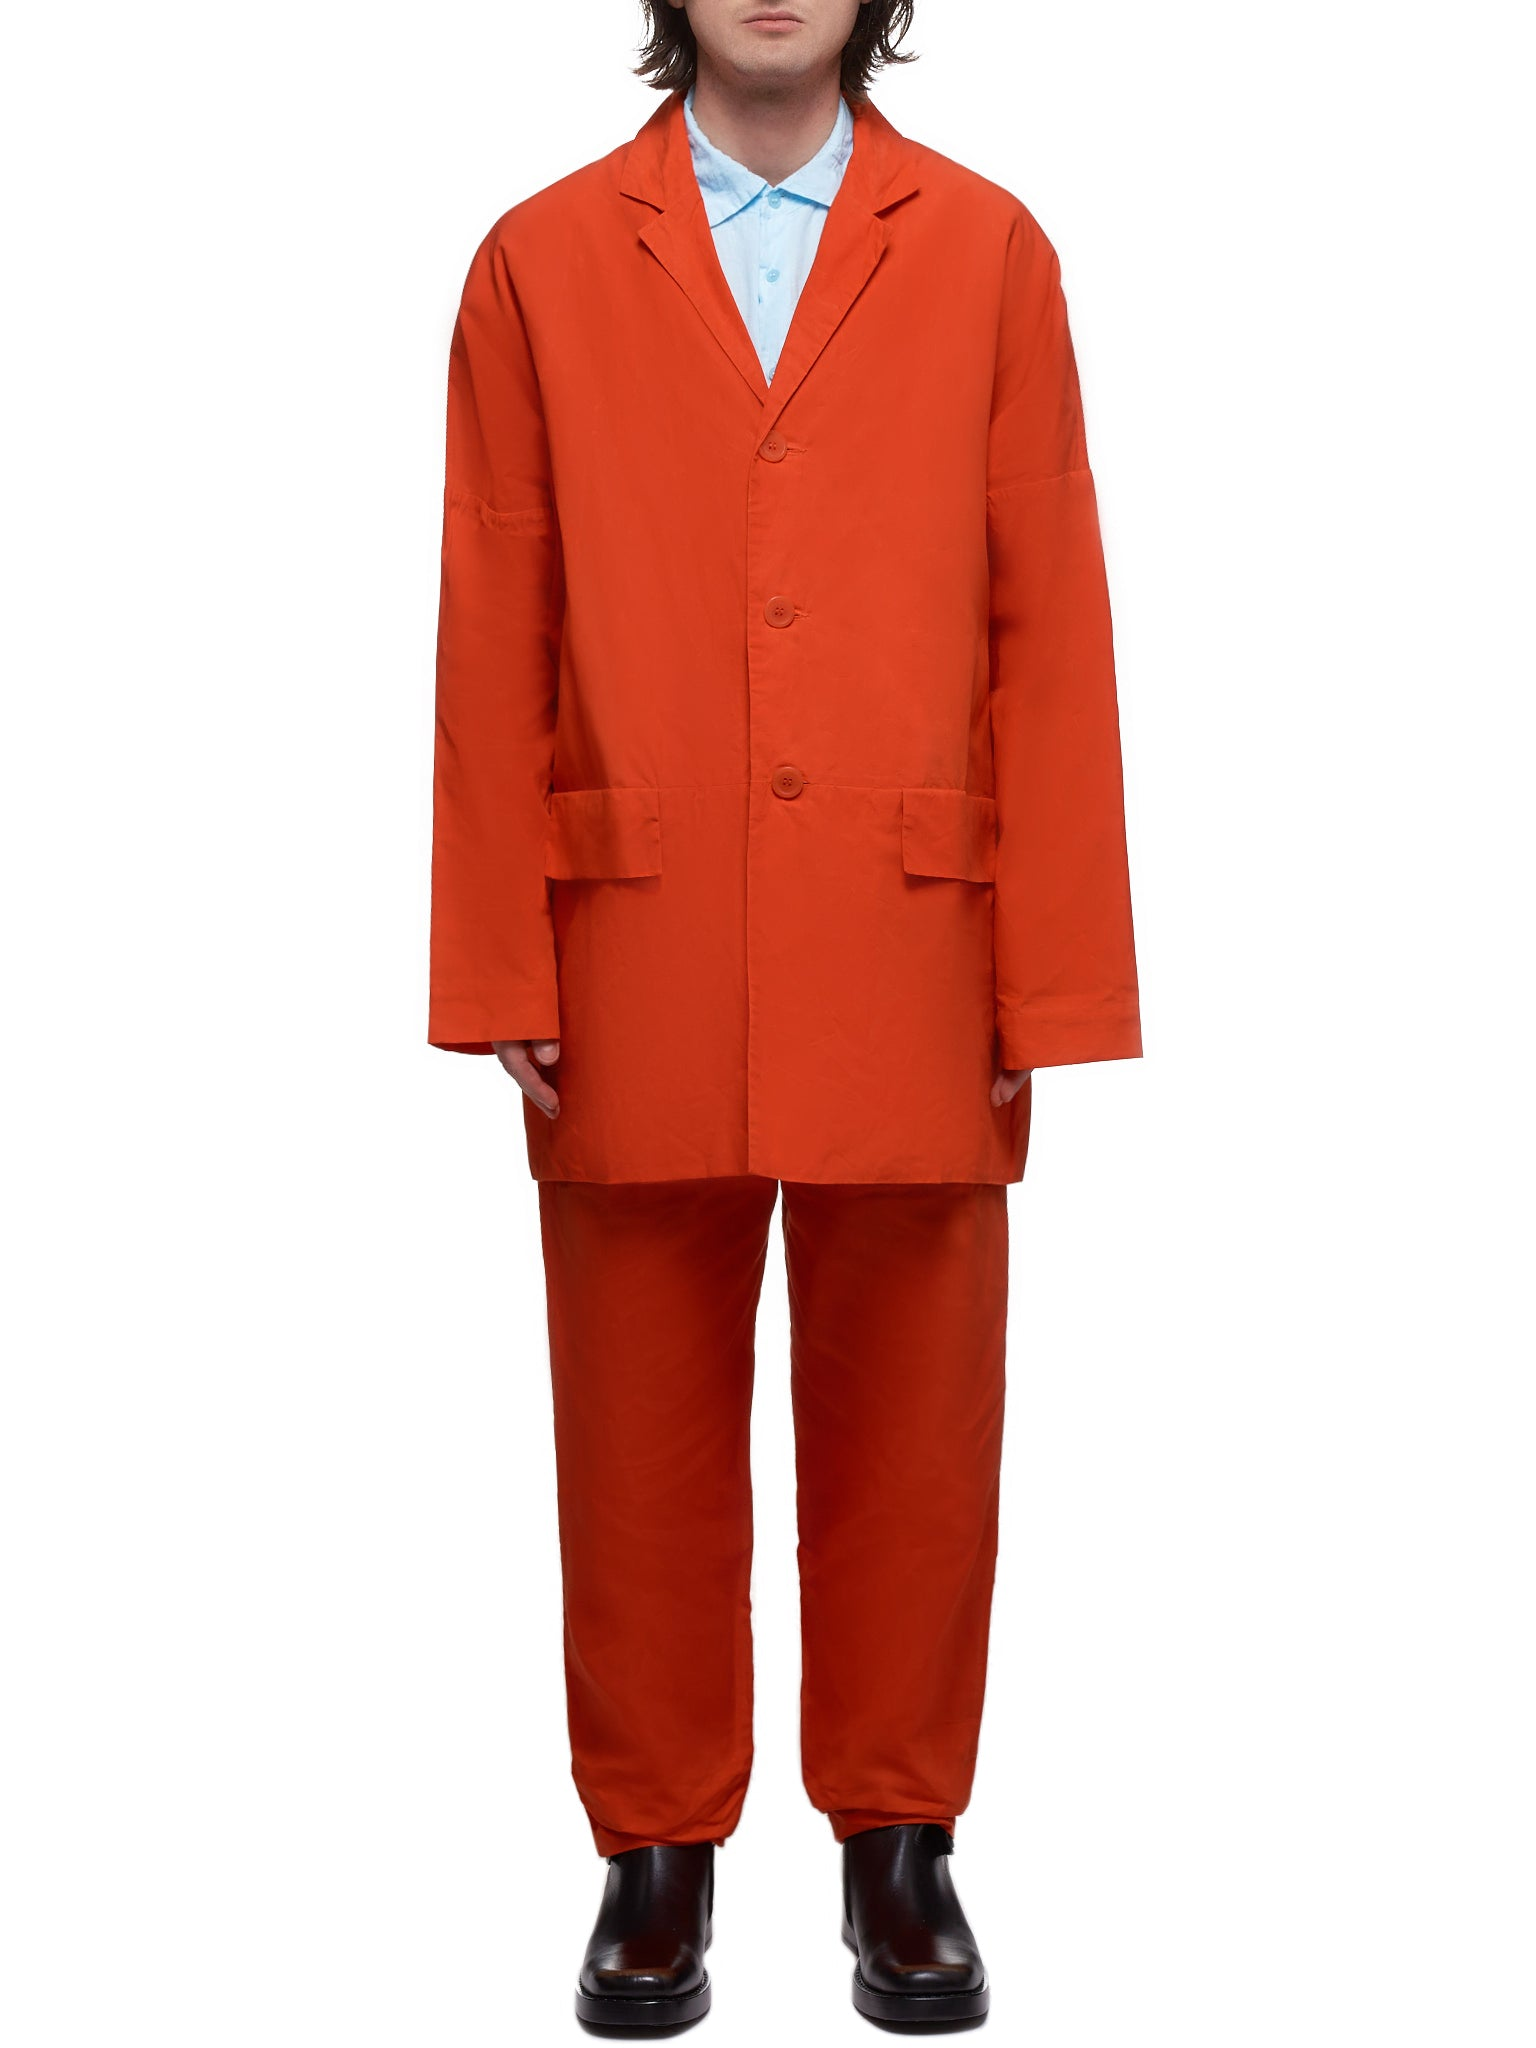 Crinkled Coat (HM93-ORANGE)